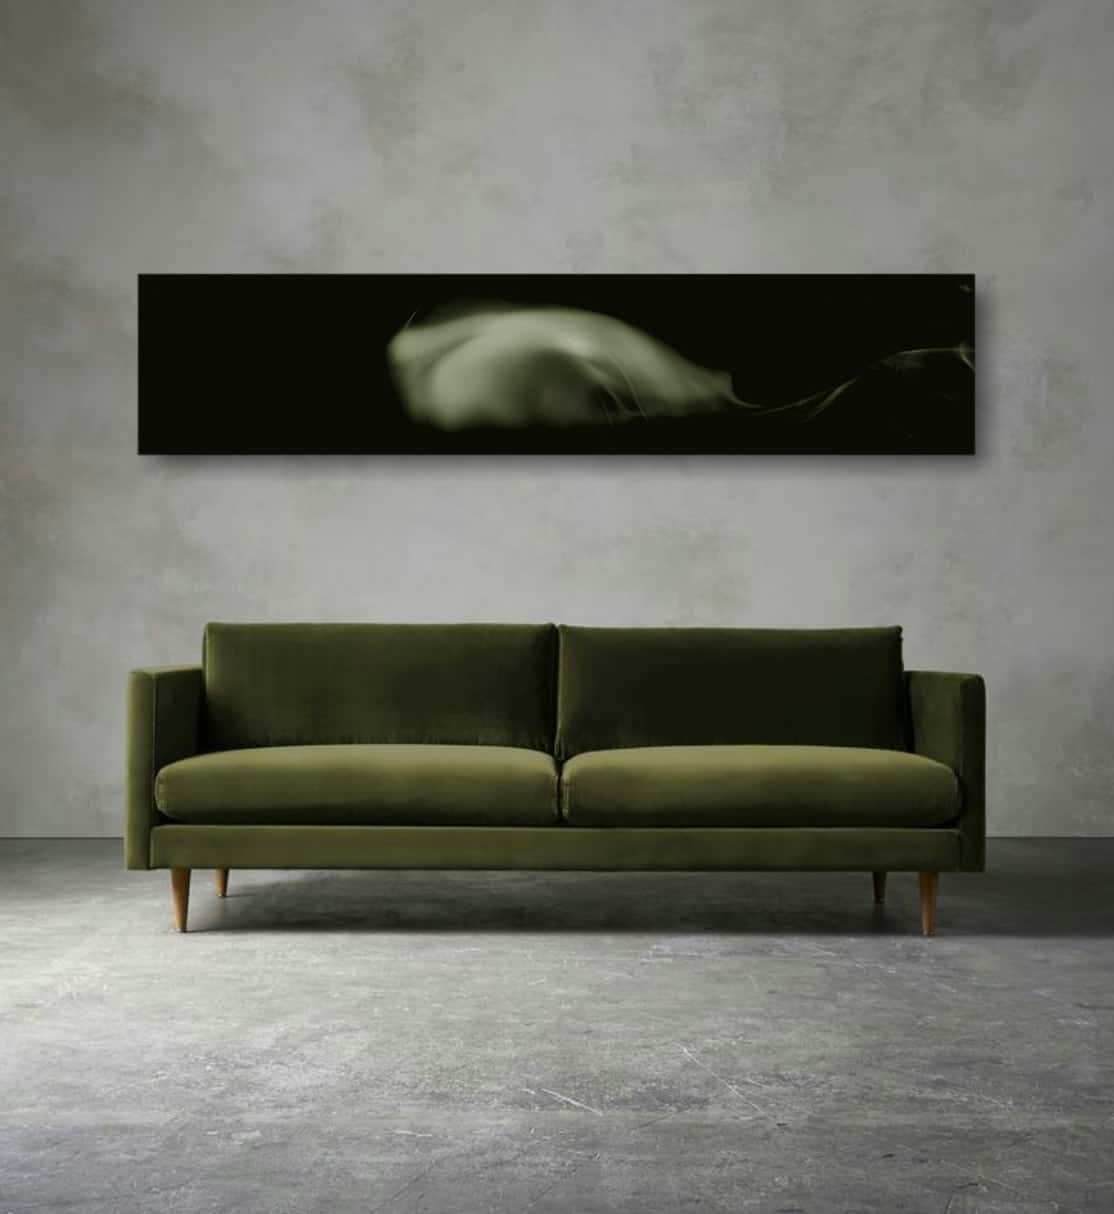 wall art, couch, home interior